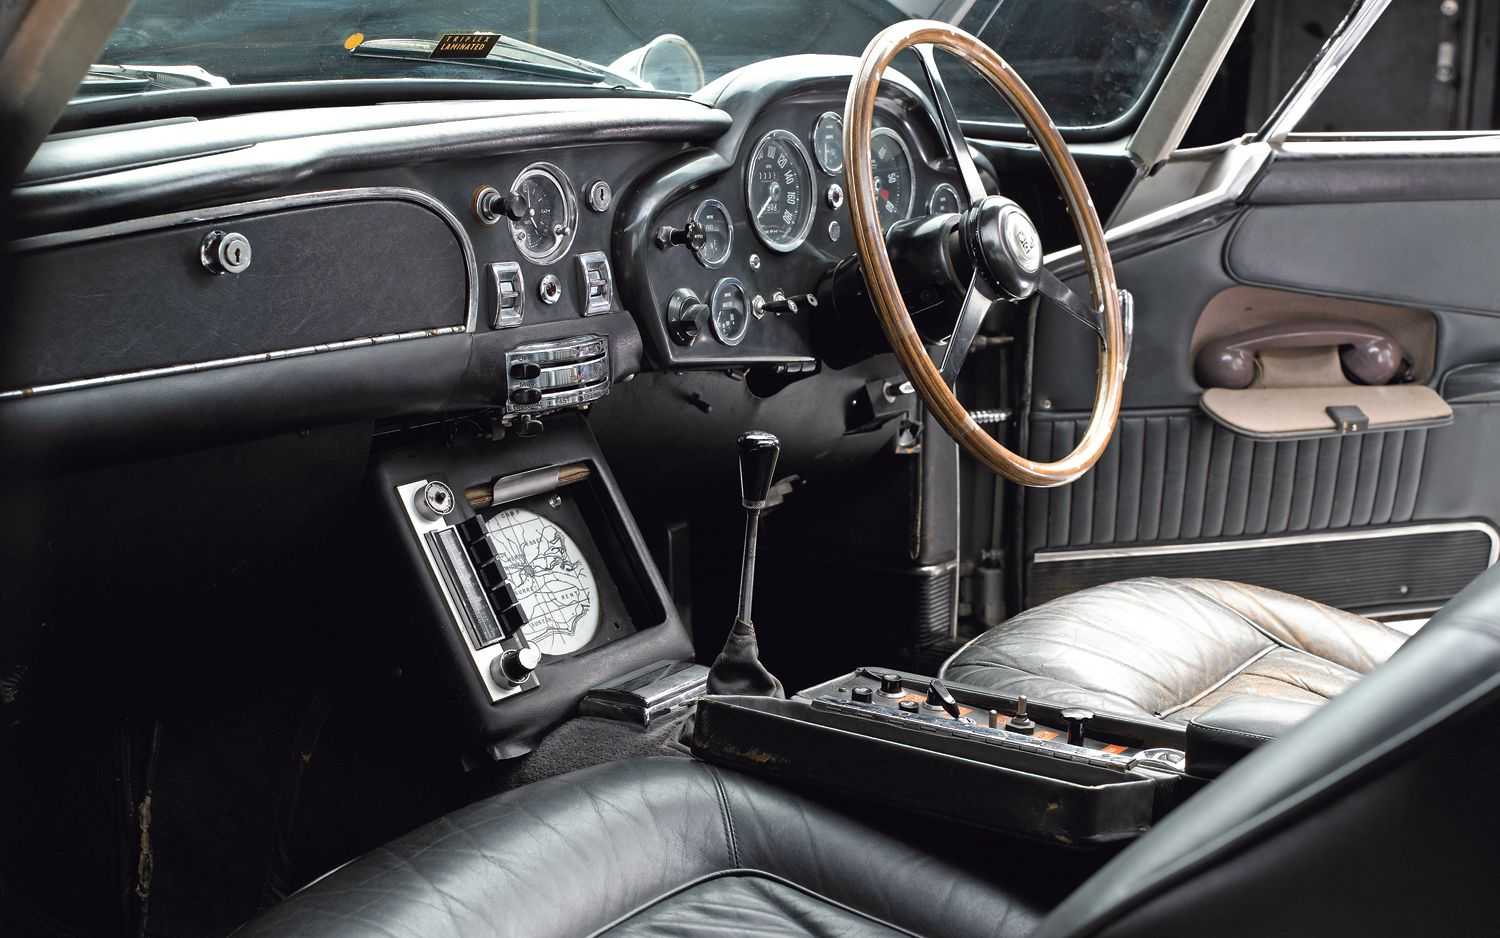 aston martin db5 | 1965 aston martin db5 interior photo 12 | 007 db5